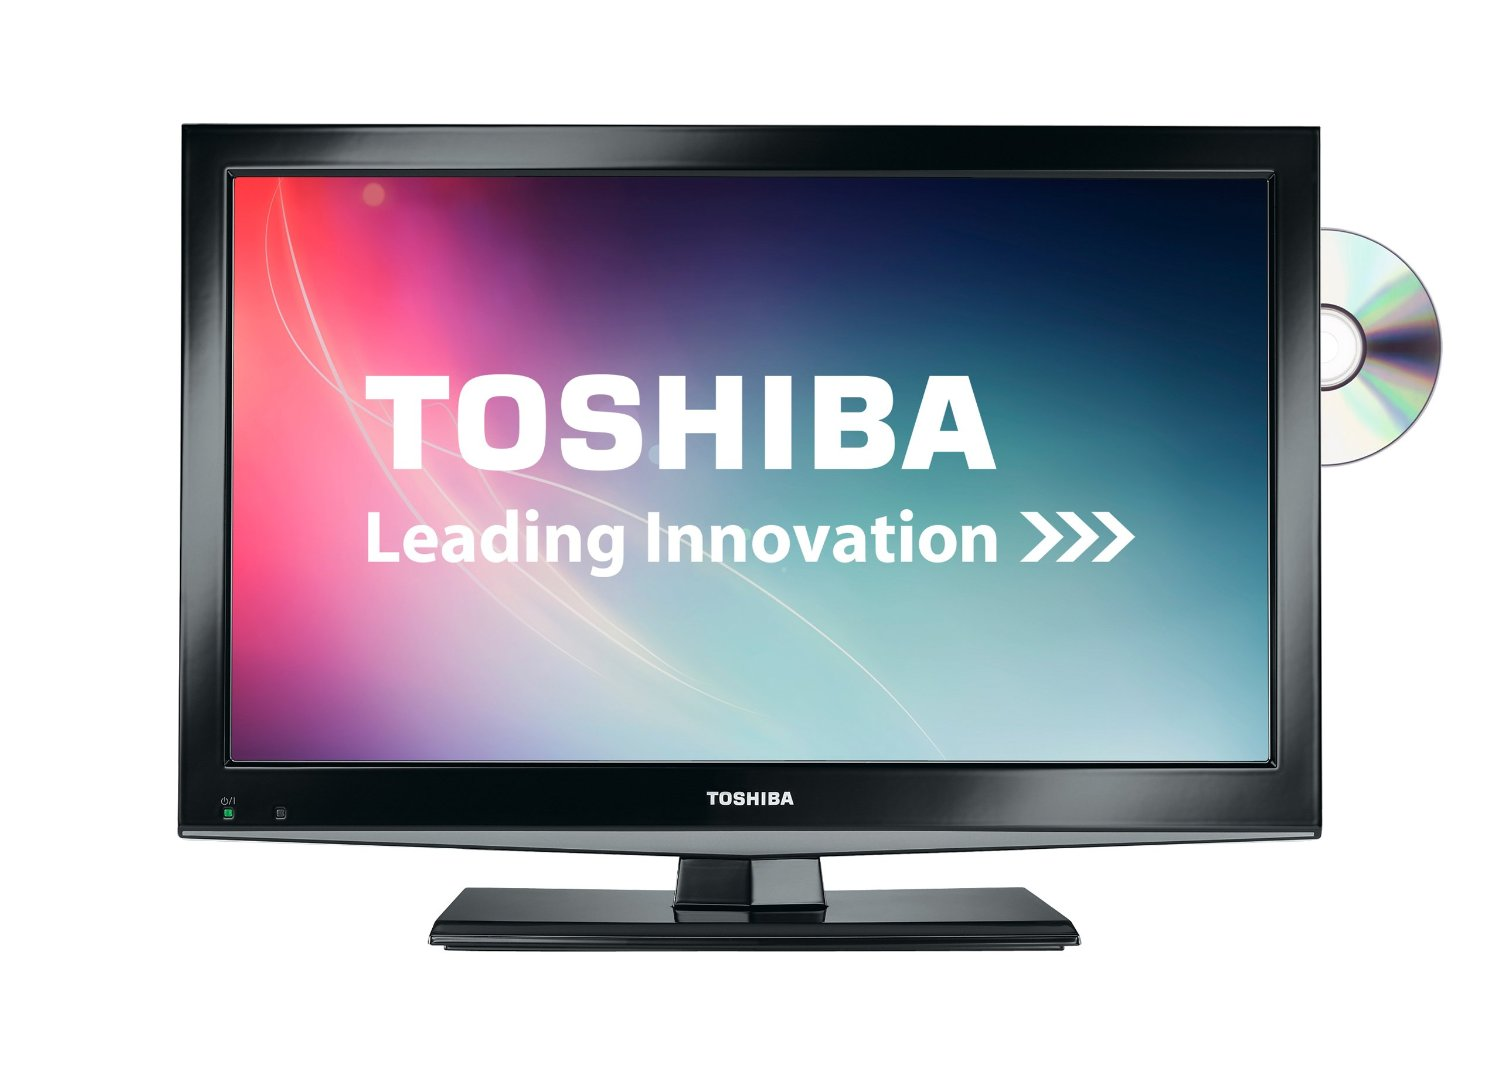 toshiba 19dl502 19 inch hd ready led dvd tv combi built in freeview usb black ebay. Black Bedroom Furniture Sets. Home Design Ideas